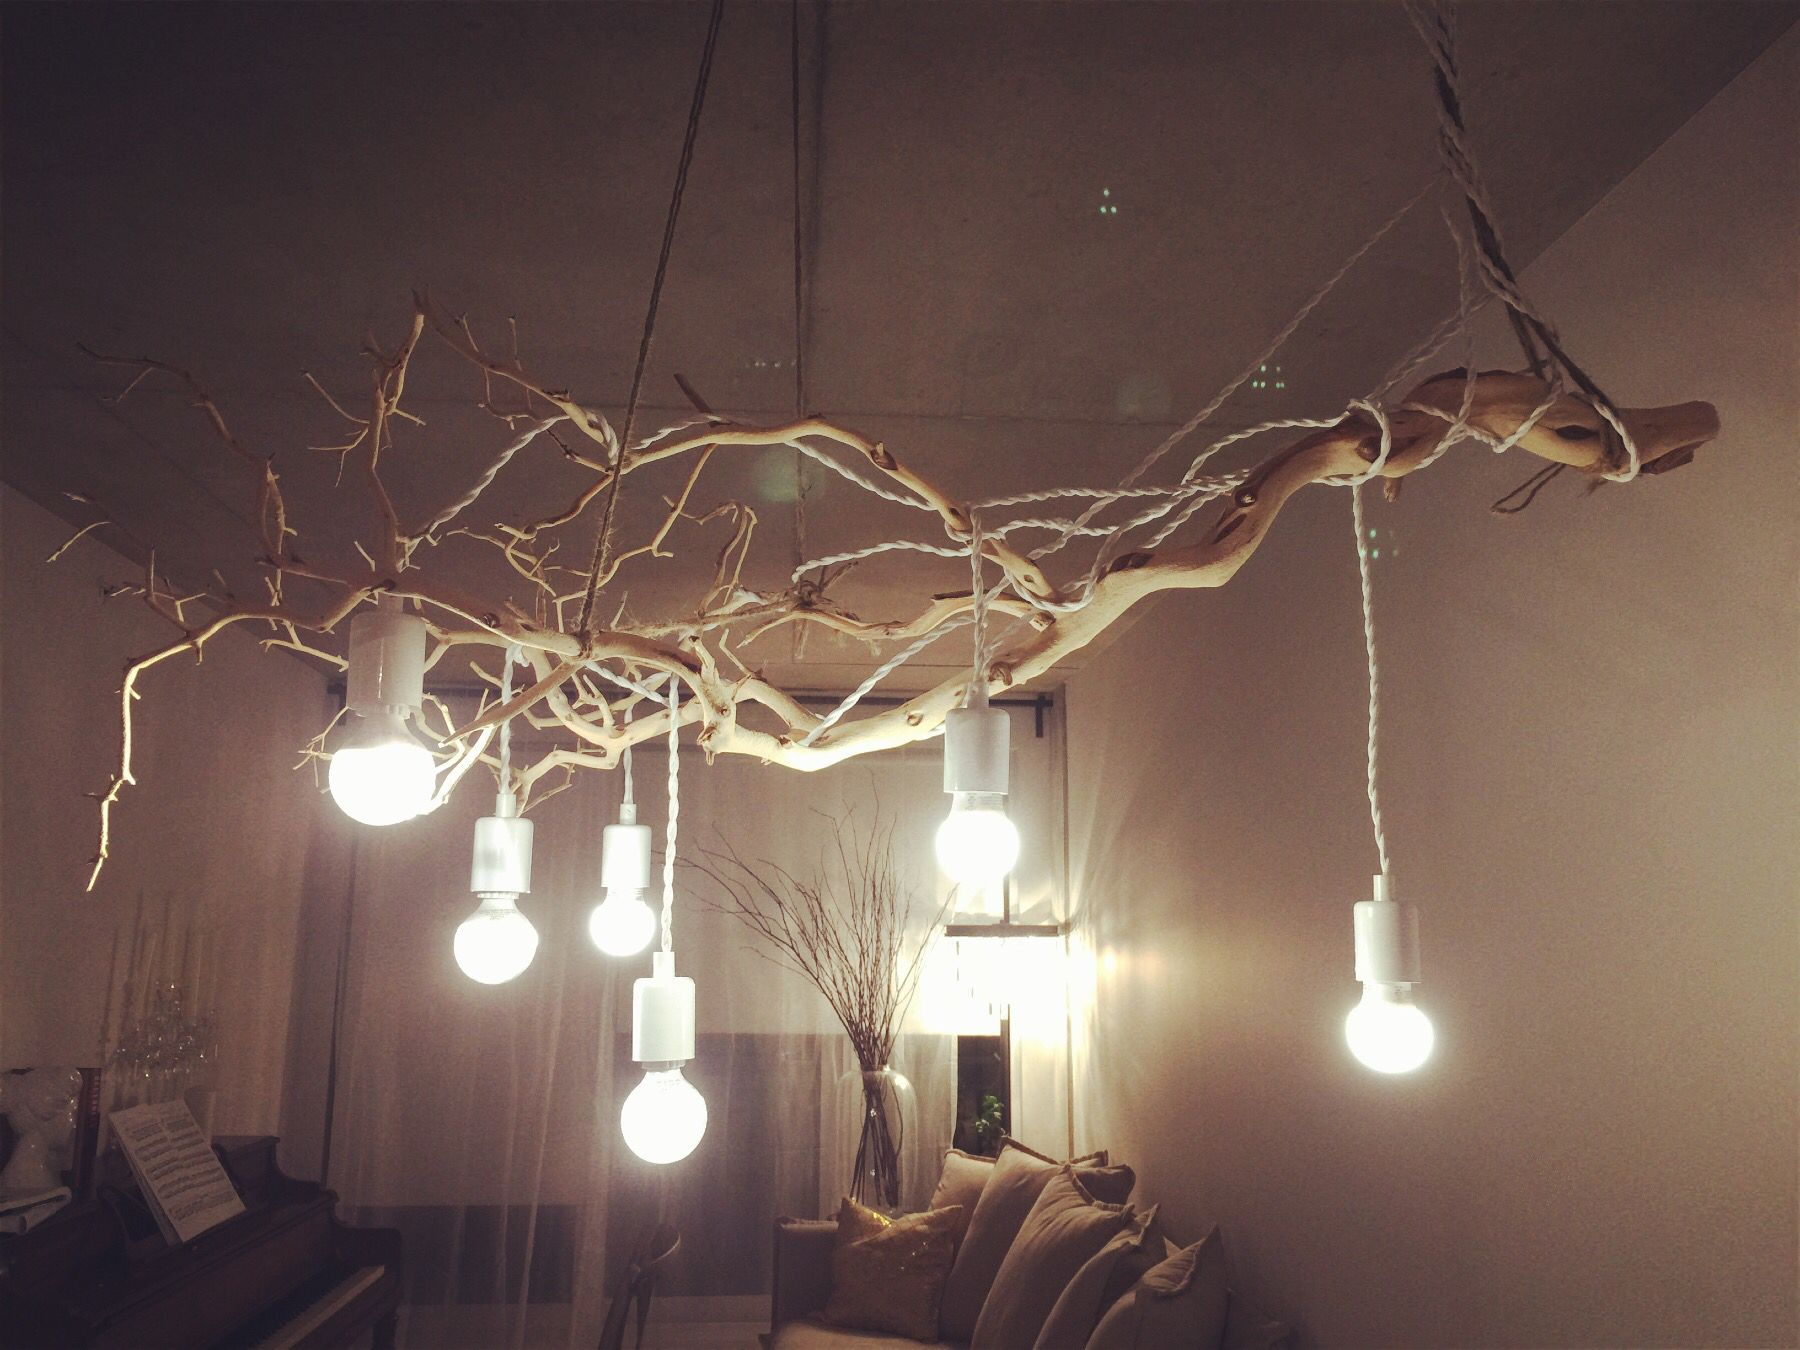 My favourite diy branch chandelier made by just branches and simple my favourite diy branch chandelier made by just branches and simple light bulbs very low aloadofball Images